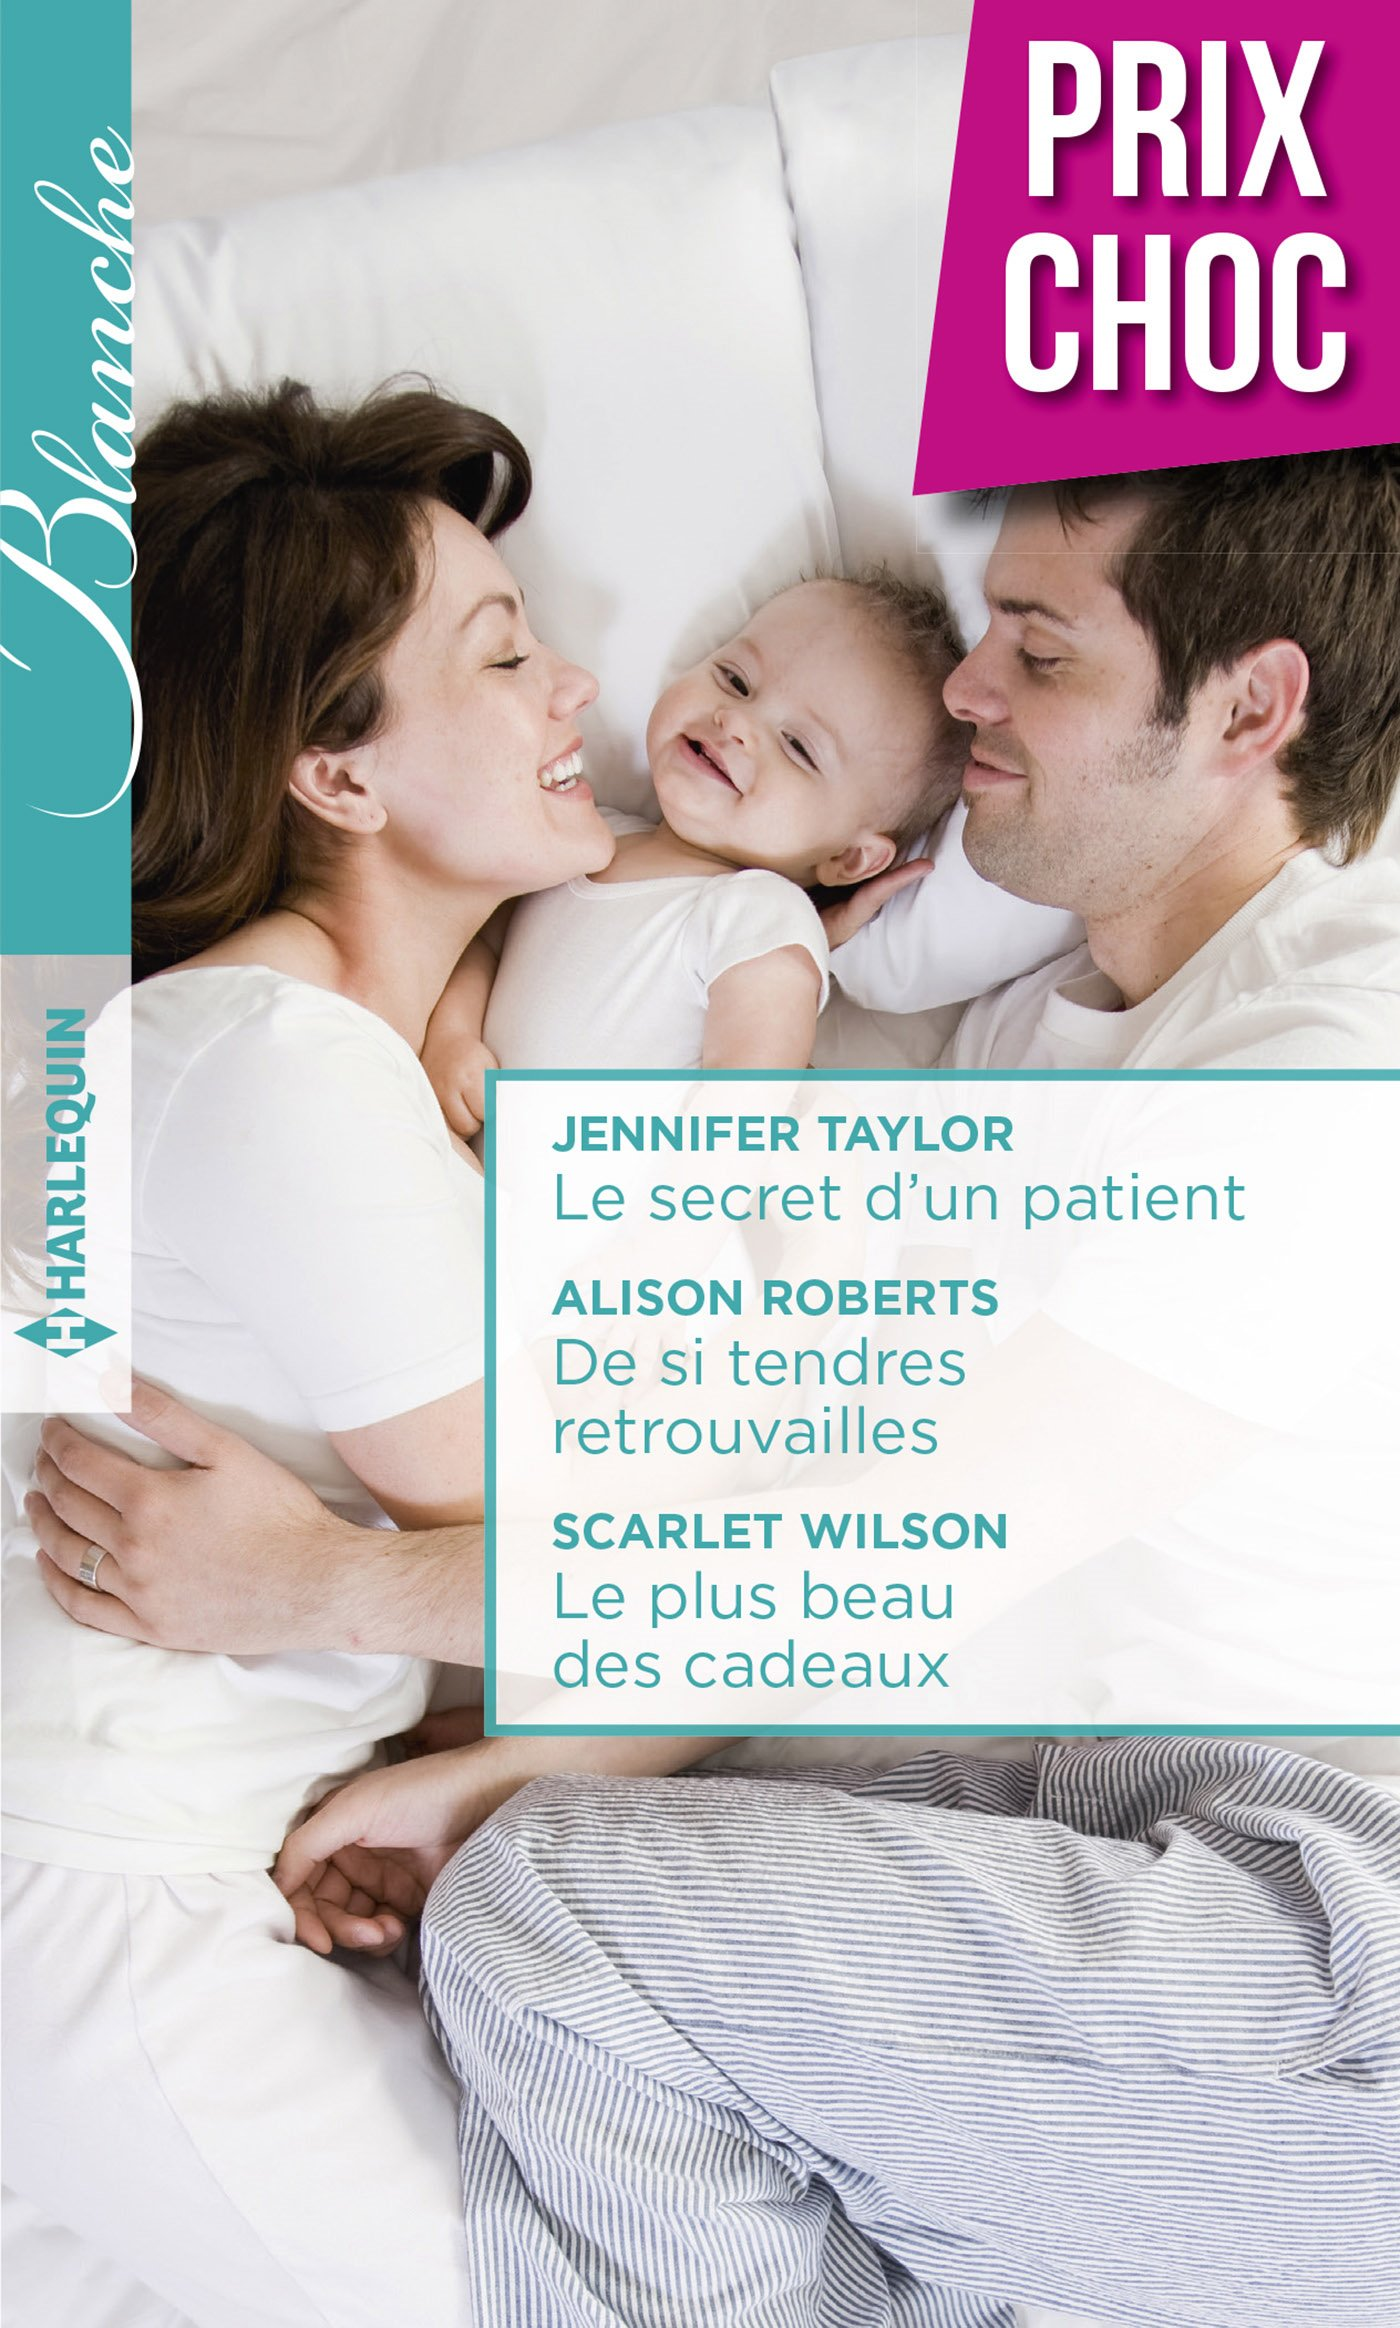 Couverture : Jennifer Taylor, Le secret d'un patient, Harlequin